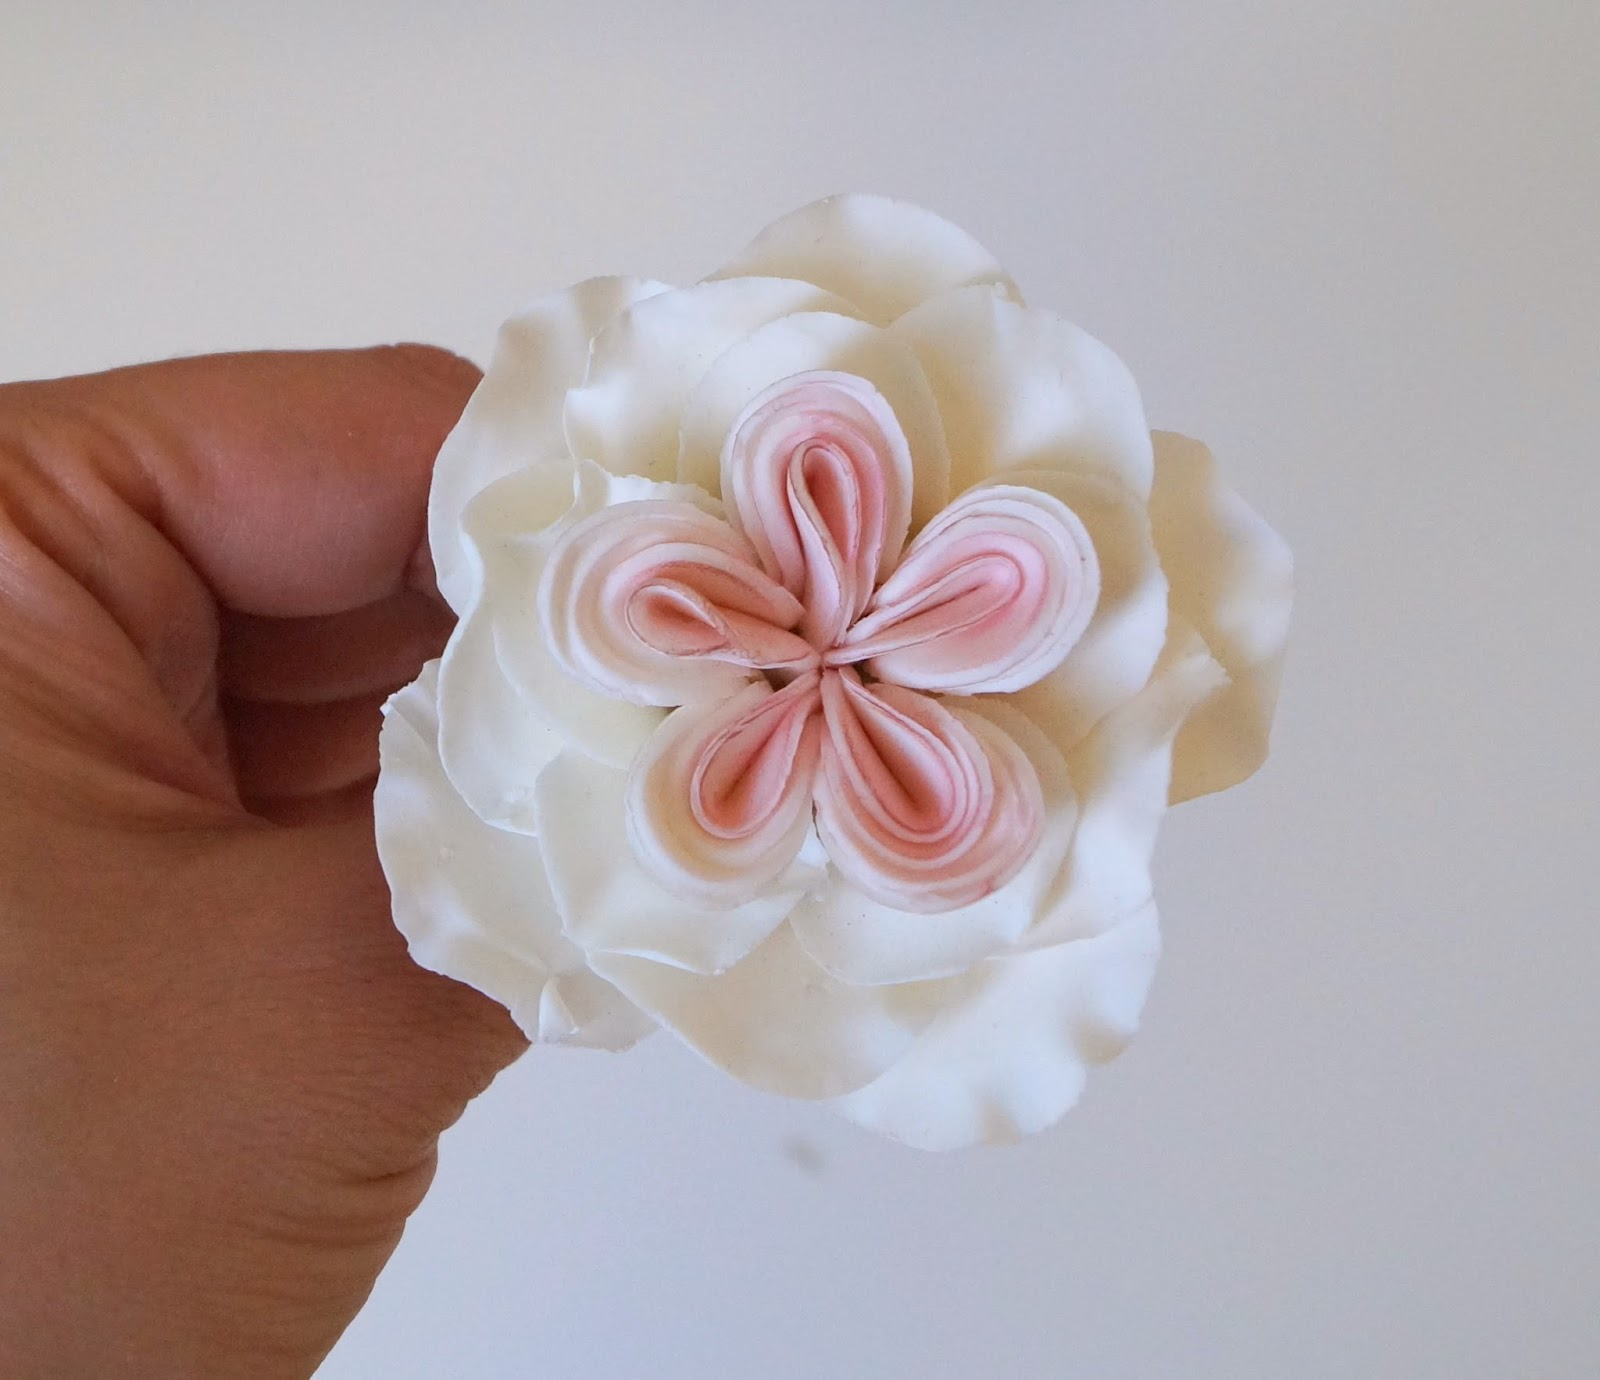 """gumpaste cabbage rose""""gumpaste flower""""cake decorating""""sugare floqers""""fondant decorating""""gumpaste decorating""""how to make a gumpaste rose"""